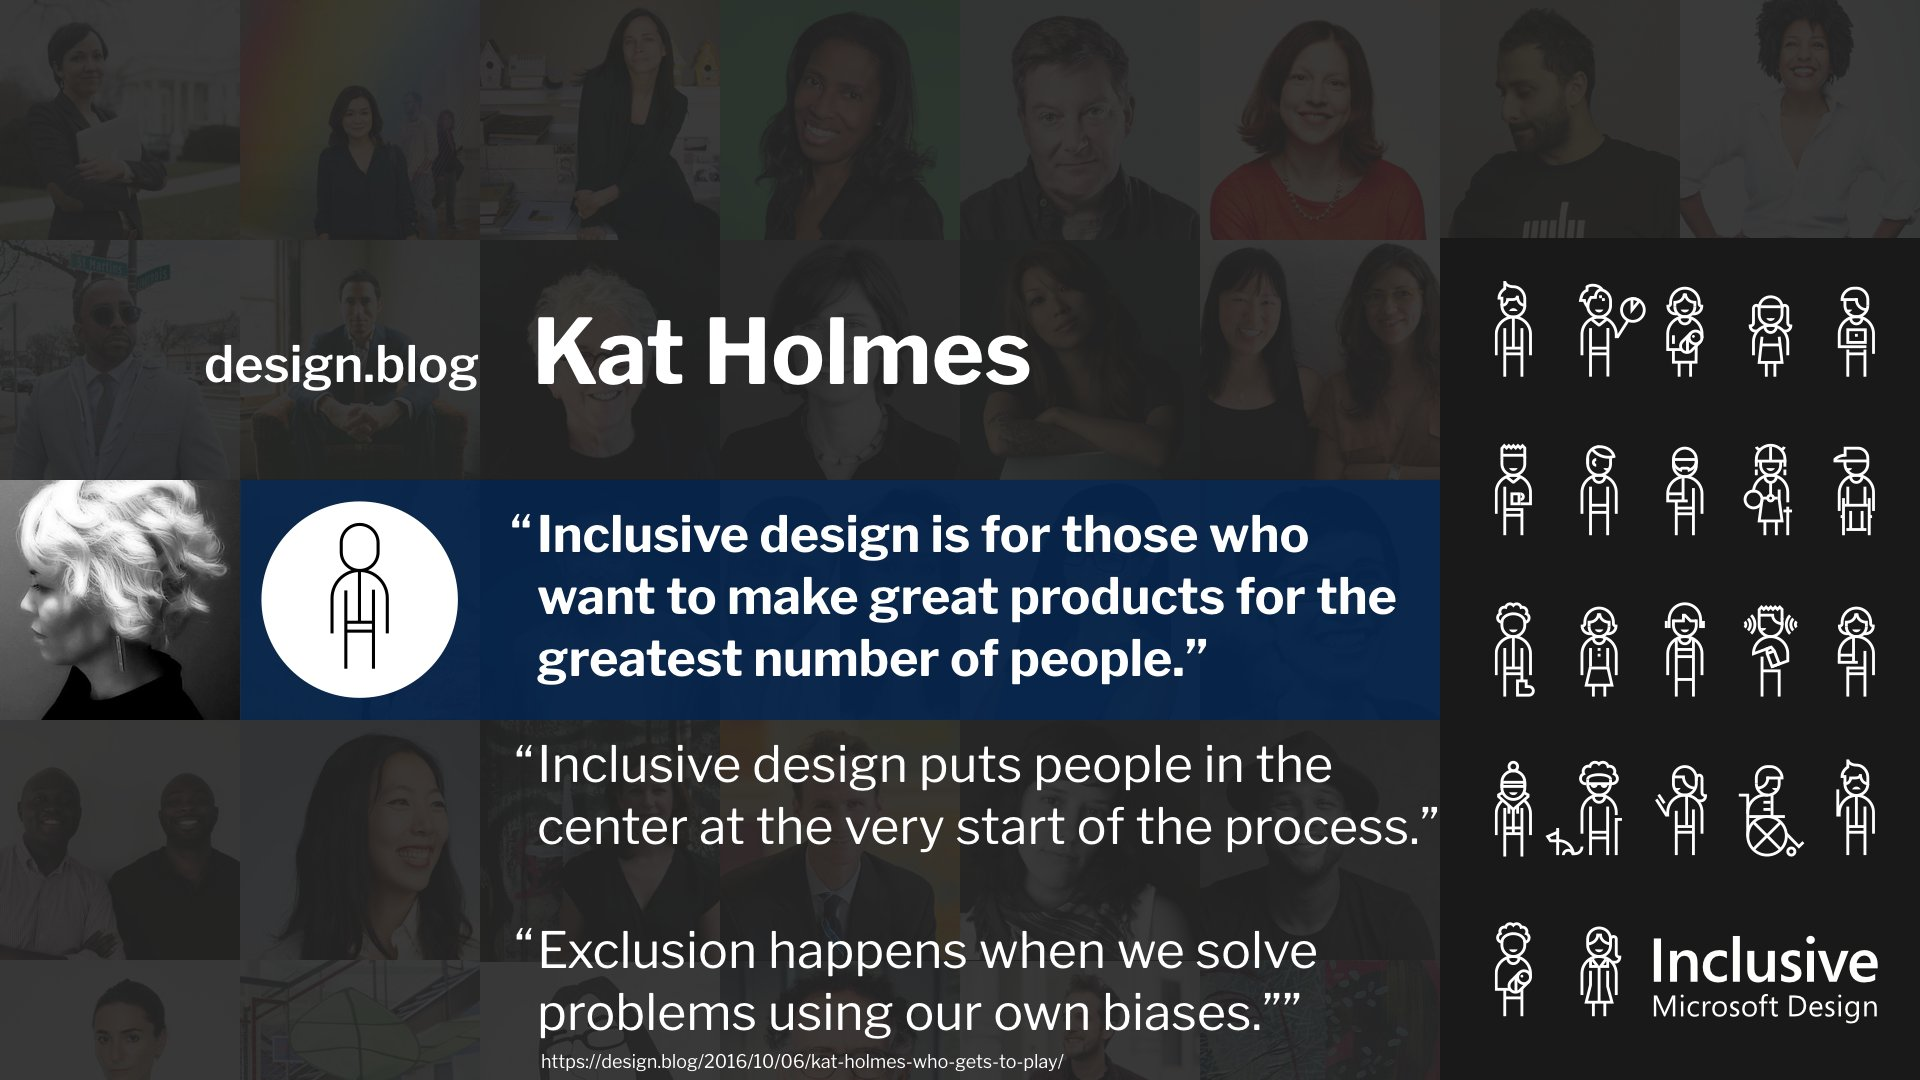 ".@katholmes: ""Inclusive design is for those who want to make great products for the greatest number of people."" #wcus https://t.co/BGZyep7BGY"